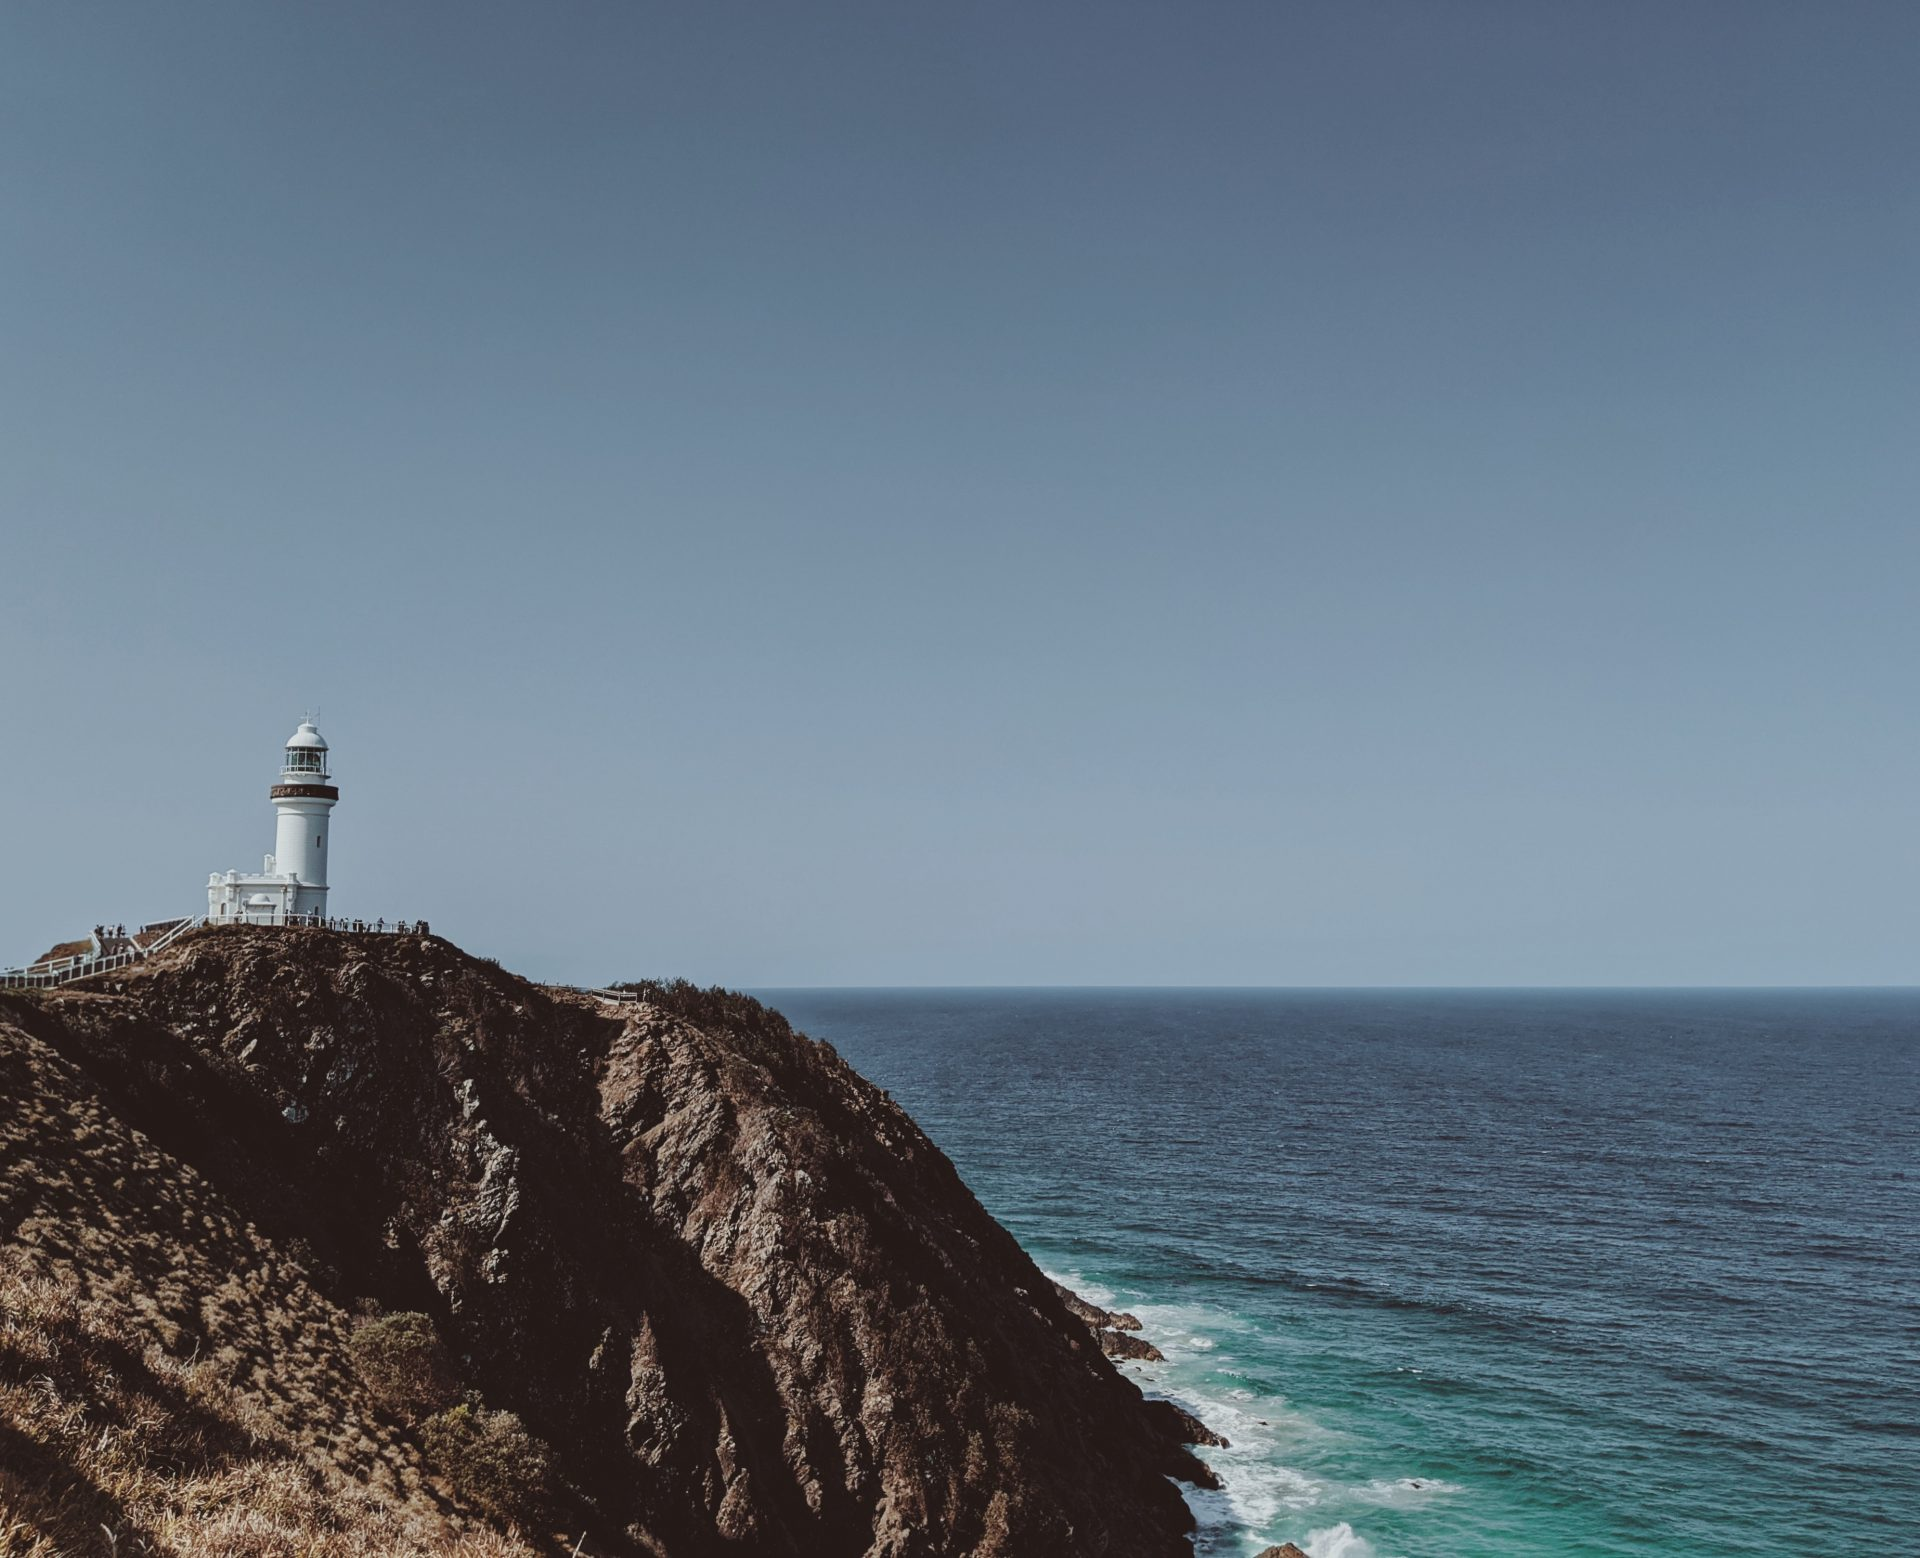 The Byron Lighthouse is one of our top recommendations for things to do in Byron Bay this winter